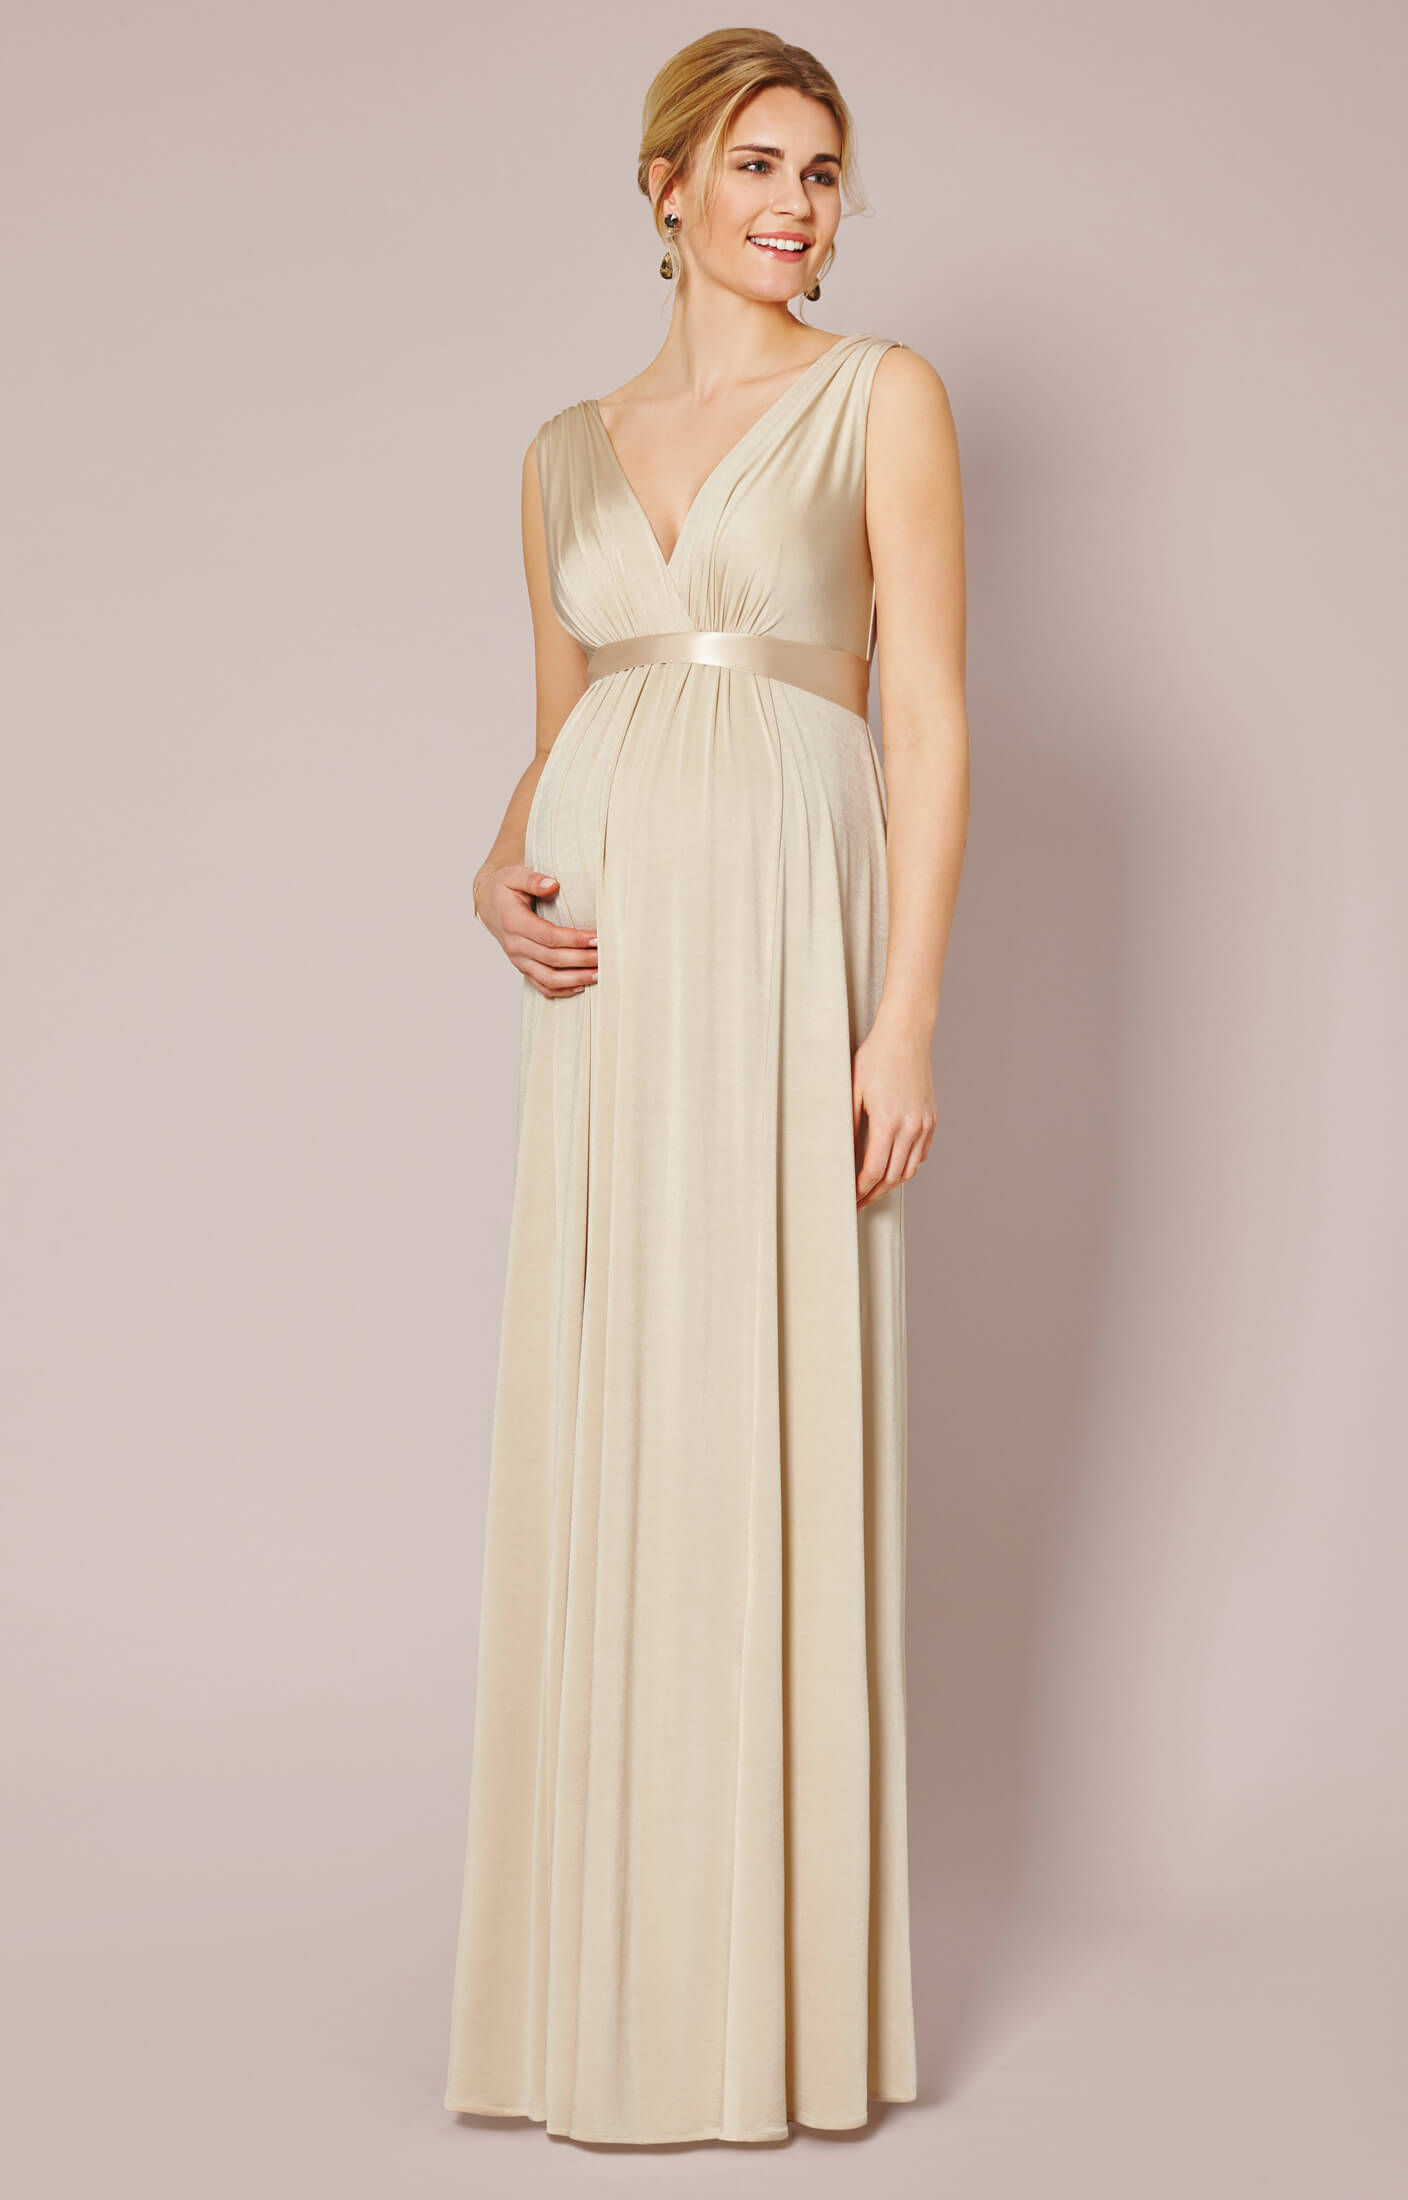 Anastasia Maternity Gown Gold Dust Maternity Wedding